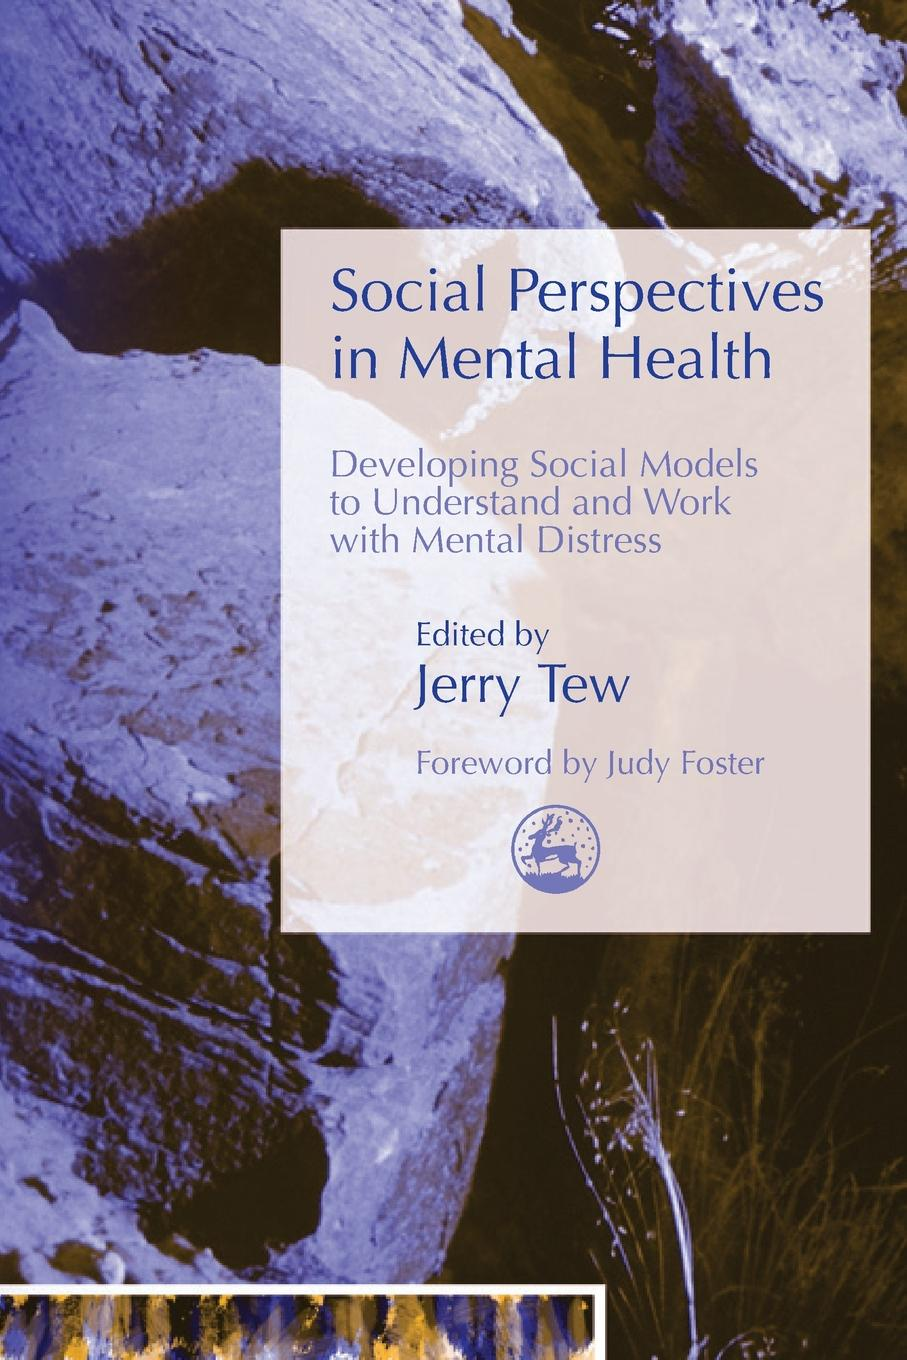 Social Perspectives in Mental Health. Developing Social Models to Understand and Work with Mental Distress walker carl work and the mental health crisis in britain